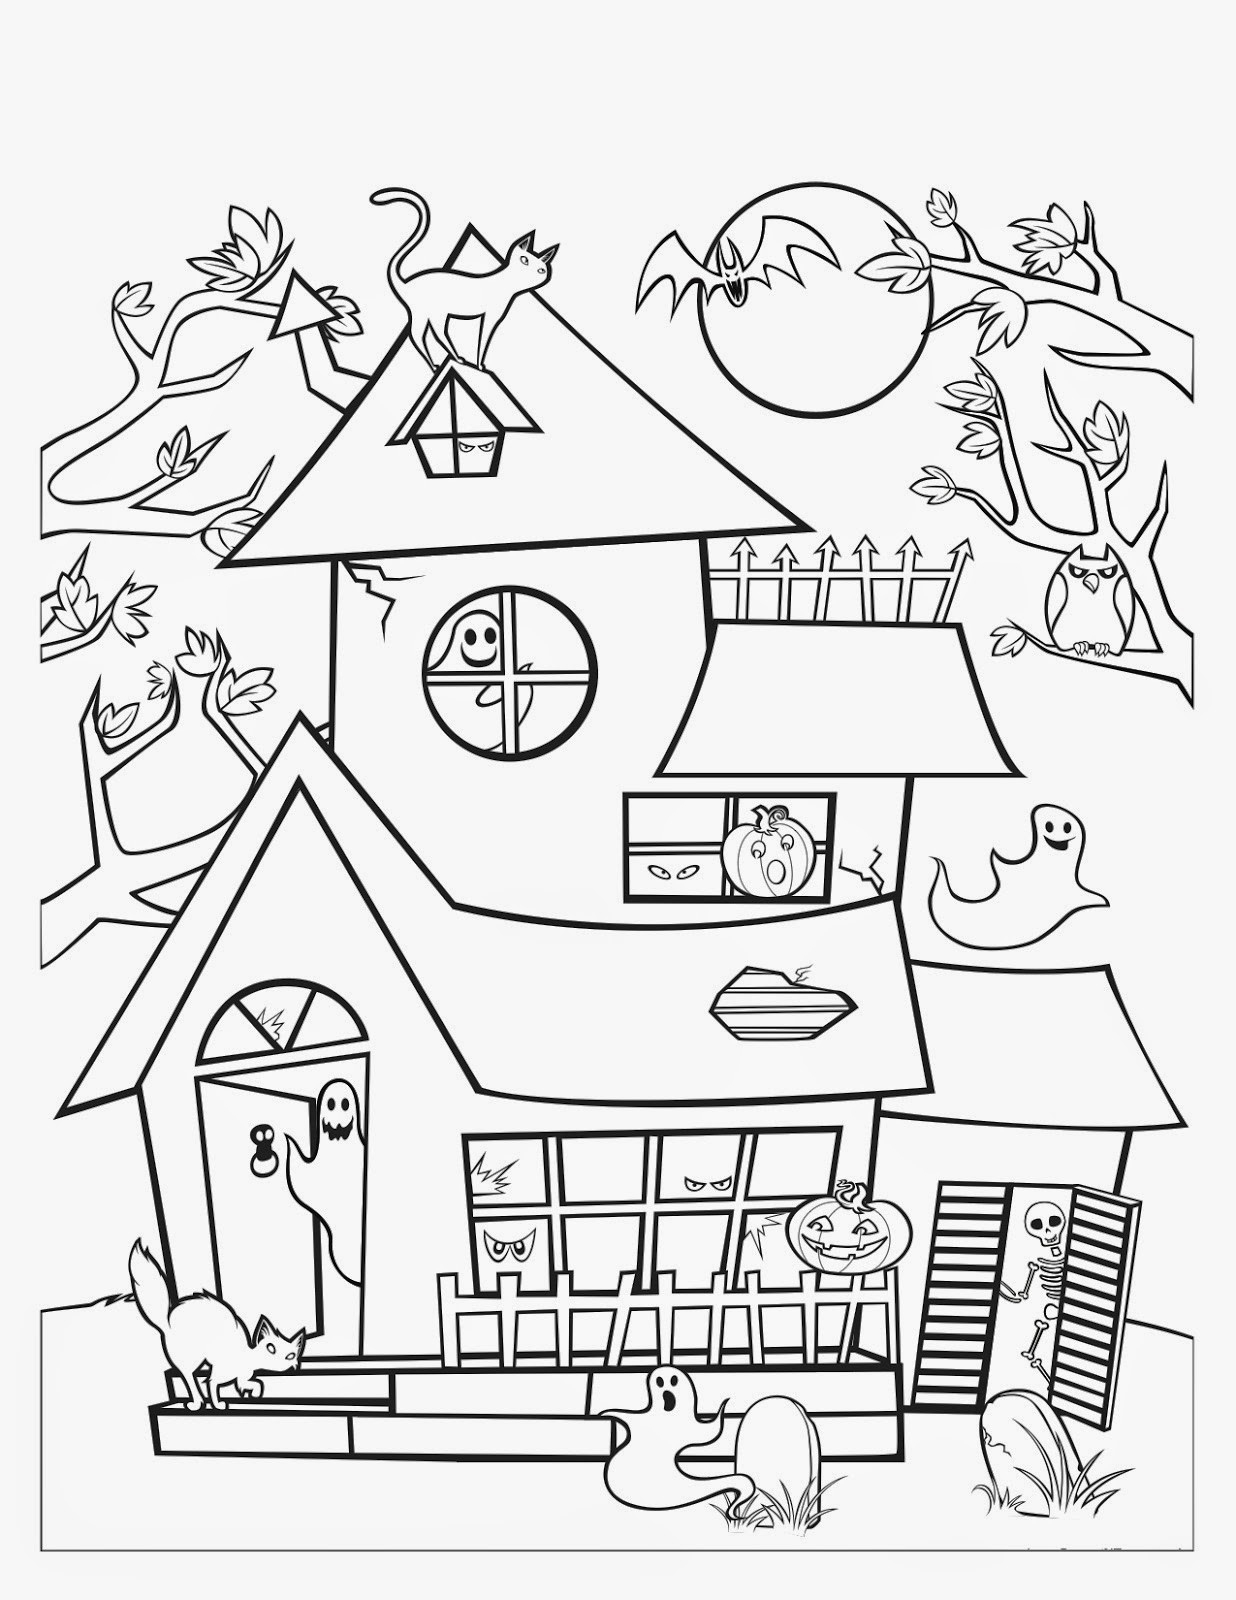 1236x1600 Haunted House Coloring Pages Getcoloringpages To Print